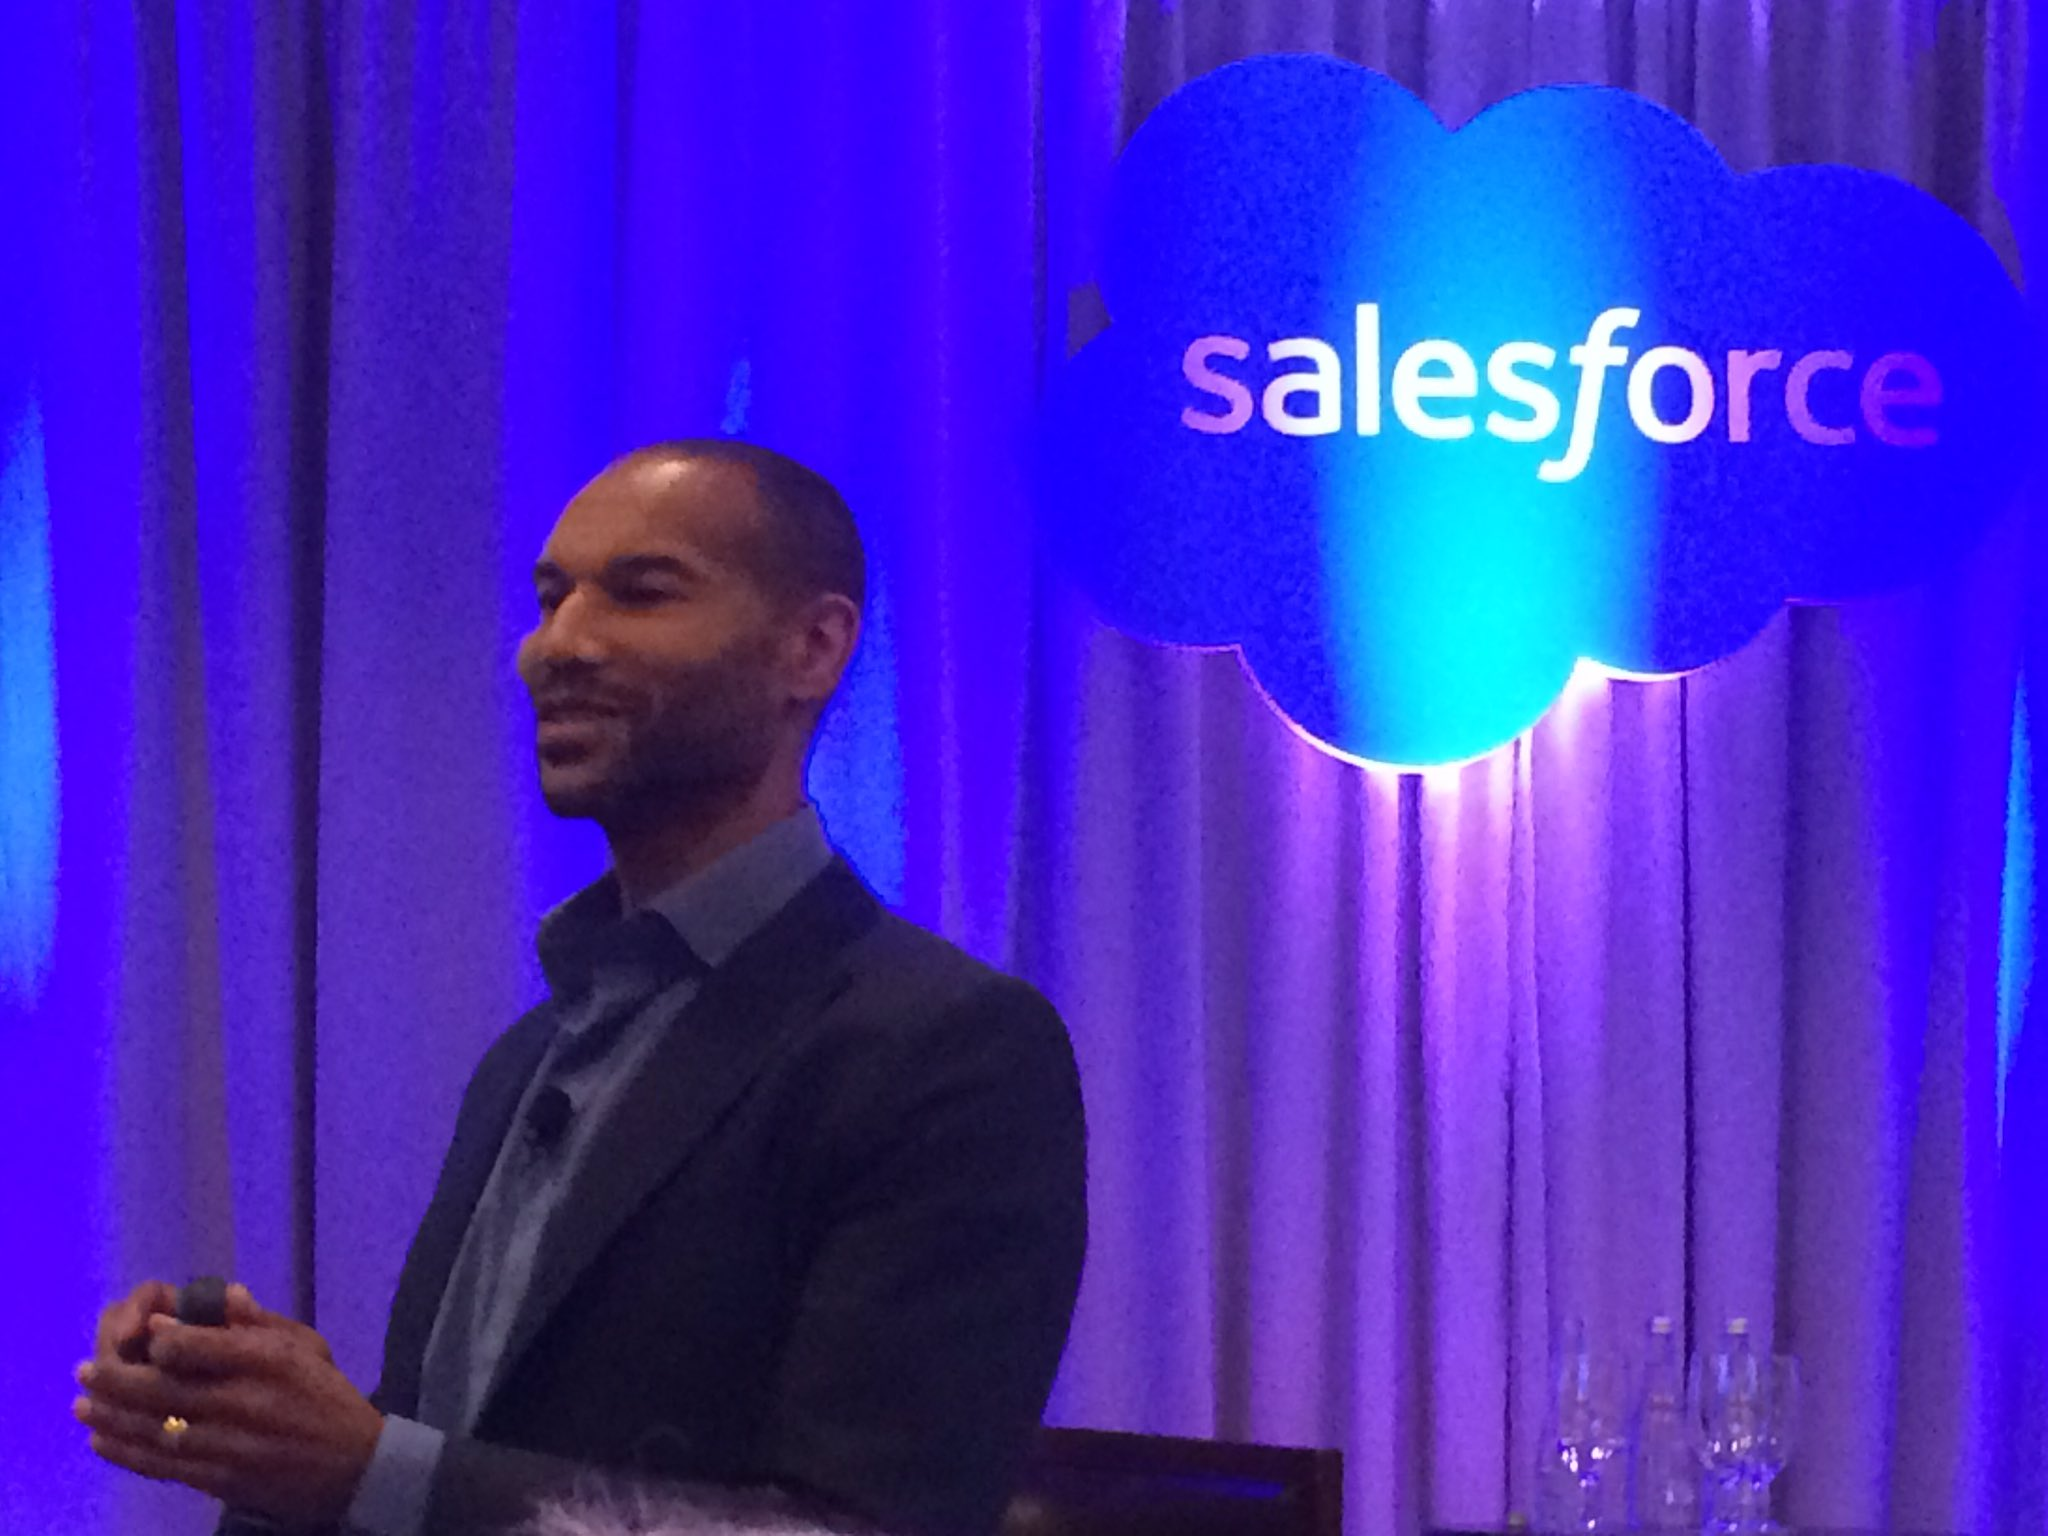 """Deep Listening,"" not deep learning, is core to 4 @salelesforce values says Tony Prophet, equality officer, at #salesforceAR https://t.co/wA2XFaDPZO"